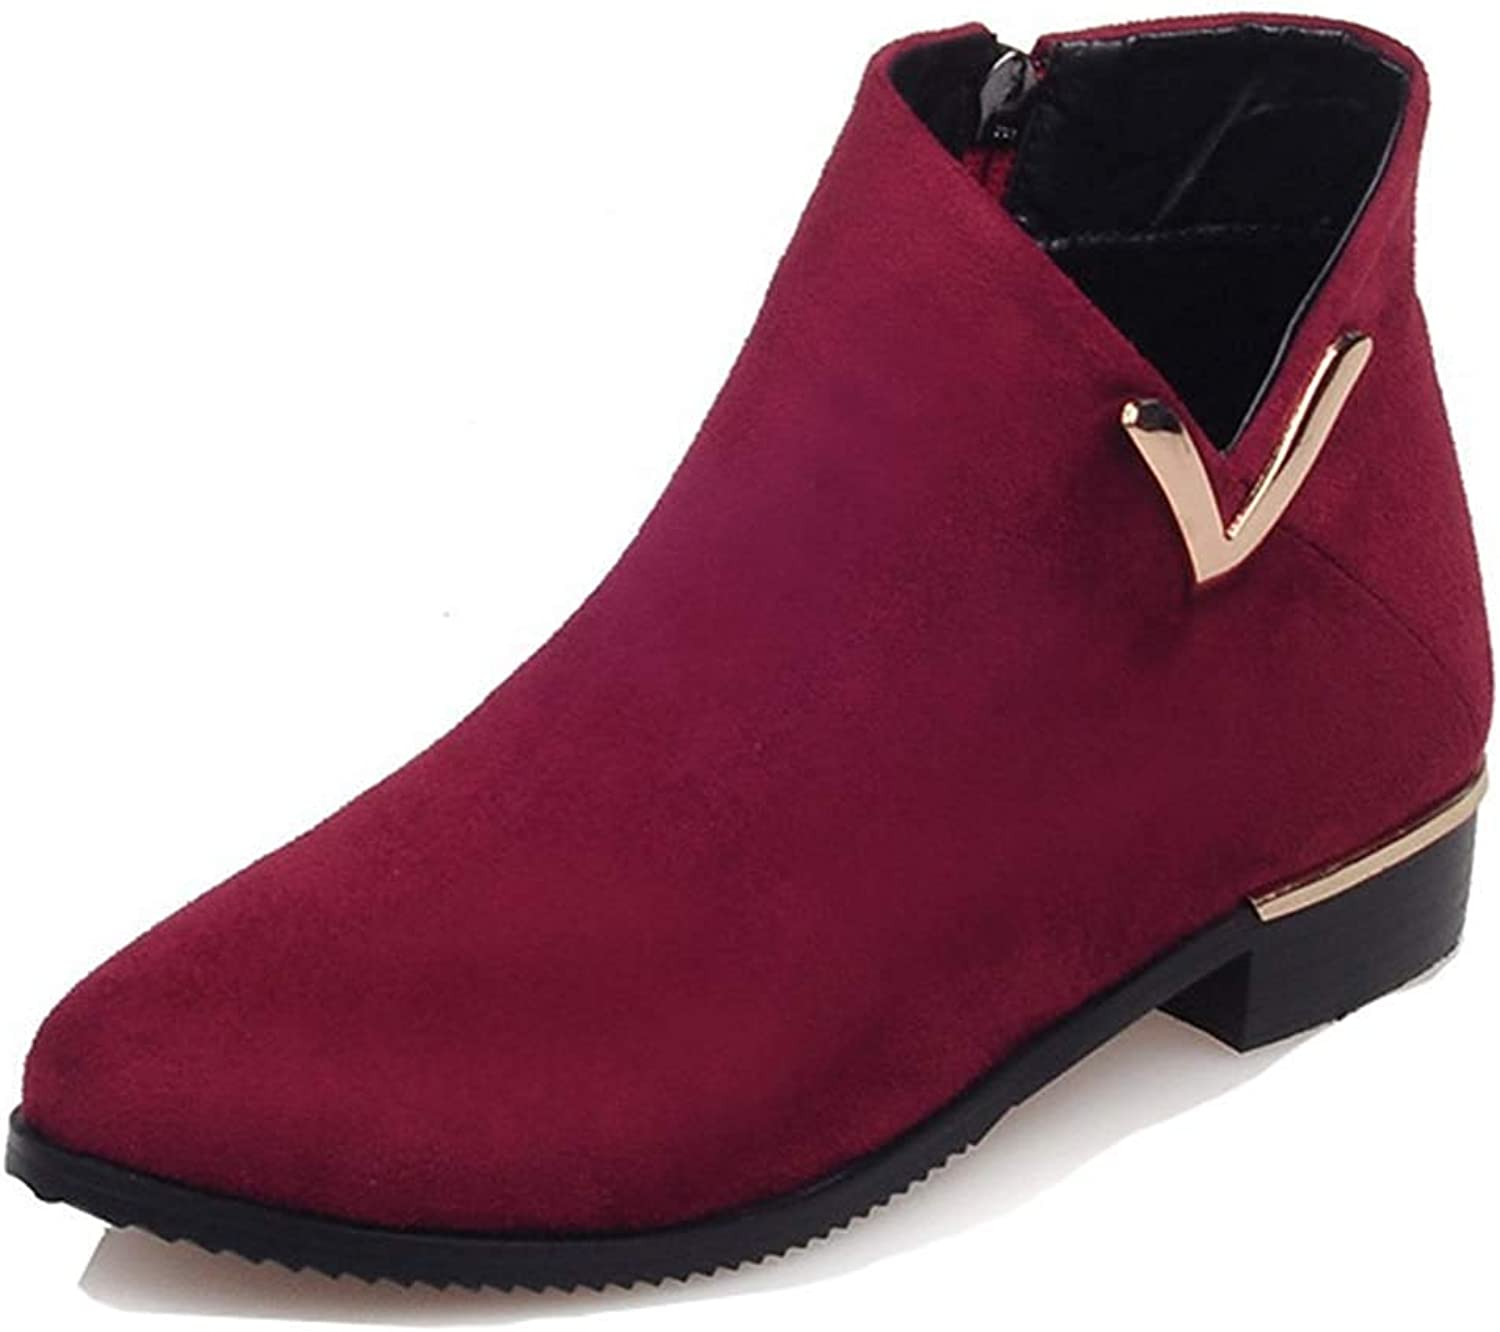 Women's Chunky Low Heel Booties - Faux Suede Inside Zip Up - Round Toe Ankle Boots with Zipper